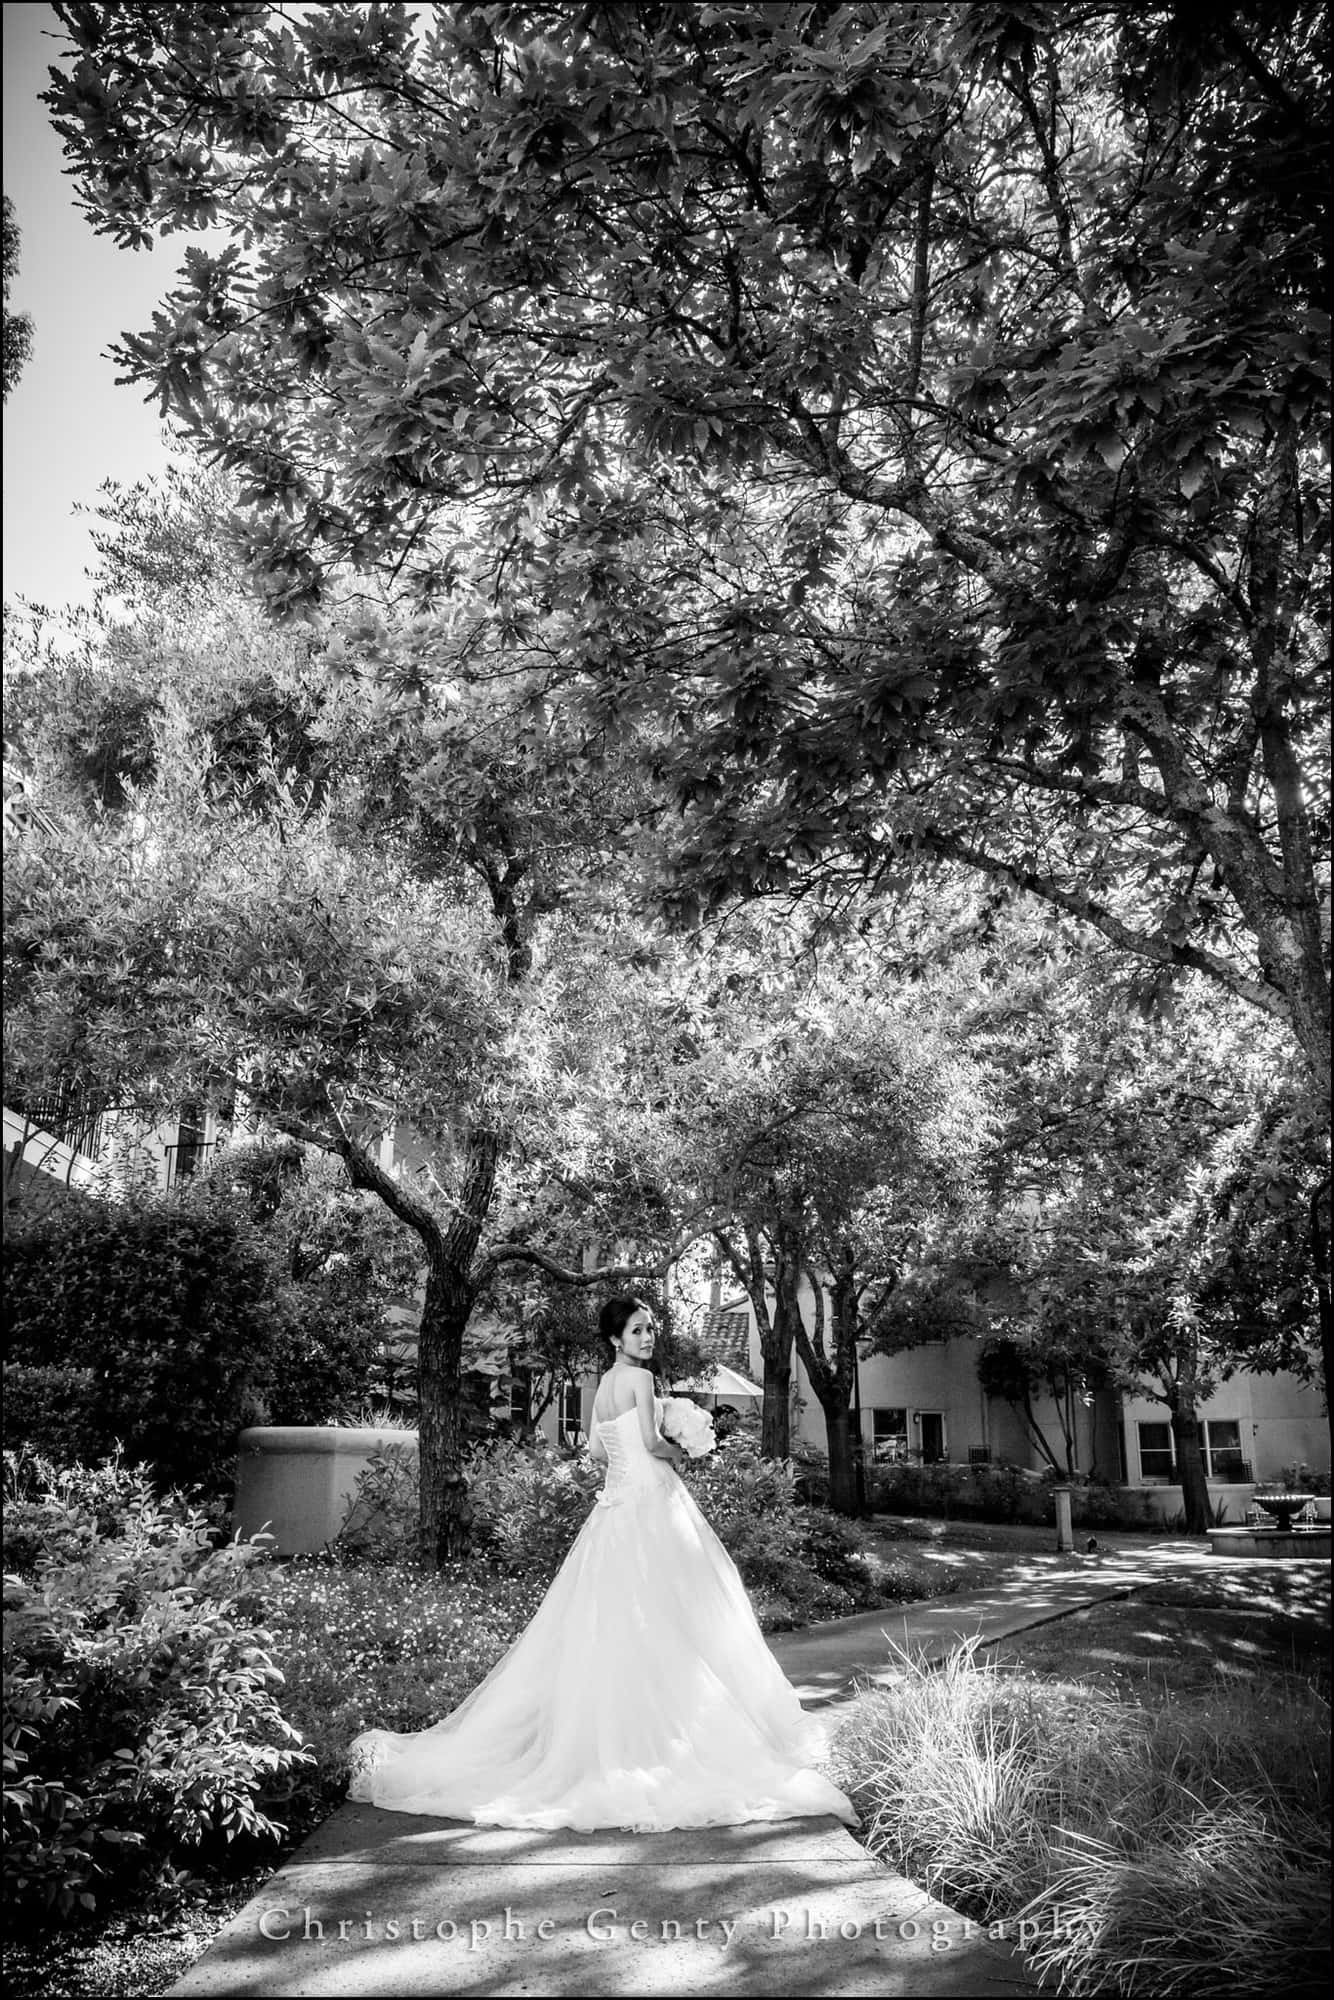 Sonoma Valley wedding photography at the Fairmont Sonoma Mission Inn